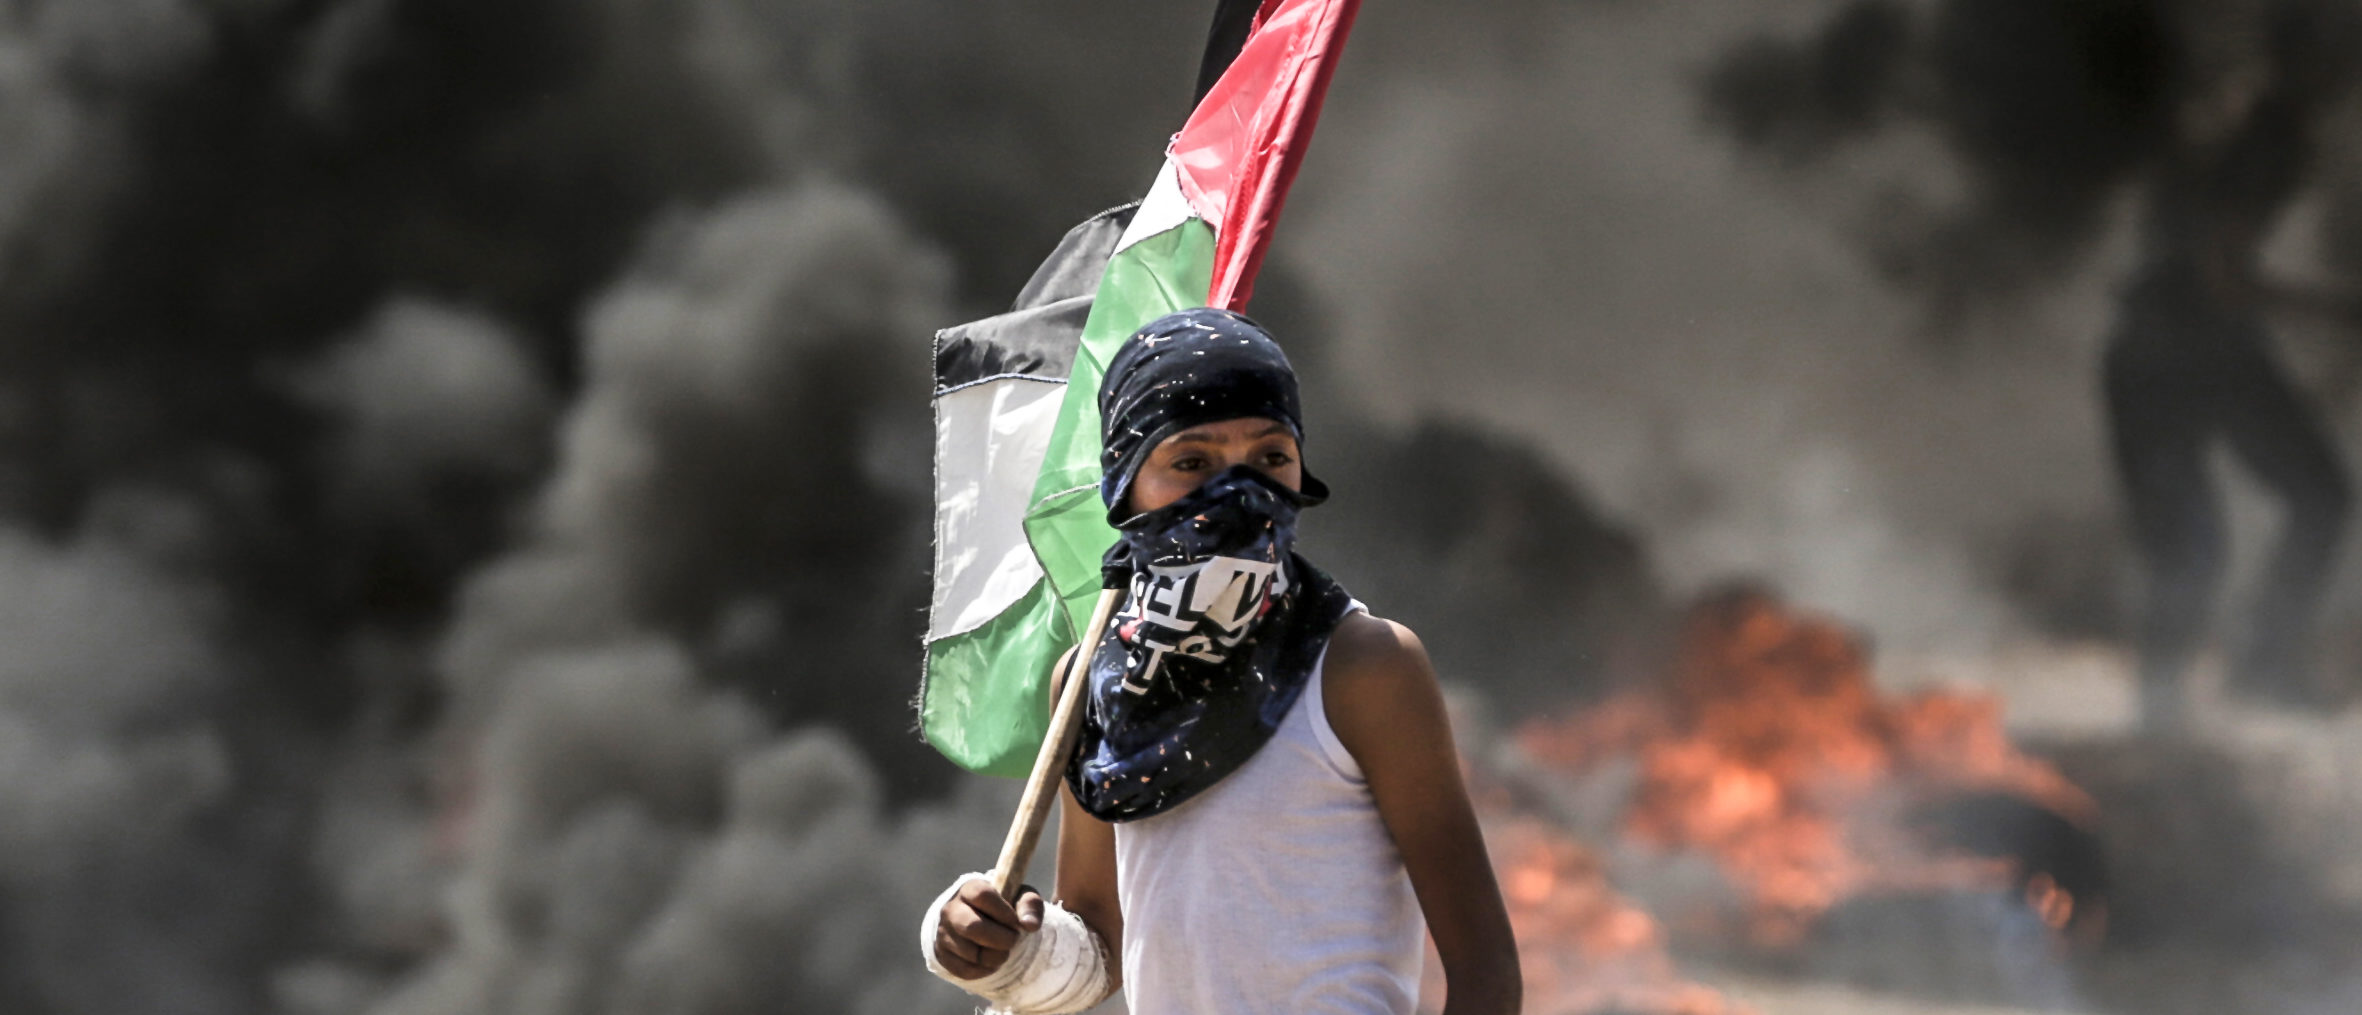 A Palestinian boy holding his national flag looks at clashes with Israeli security forces near the border between the Gaza Strip and Israel east of Gaza City on May 14, 2018, as Palestinians protest over the inauguration of the US embassy following its controversial move to Jerusalem. - Dozens of Palestinians were killed by Israeli fire on May 14 as tens of thousands protested and clashes erupted along the Gaza border against the US transfer of its embassy to Jerusalem, after months of global outcry, Palestinian anger and exuberant praise from Israelis over President Donald Trump's decision tossing aside decades of precedent. (MAHMUD HAMS/AFP/Getty Images)